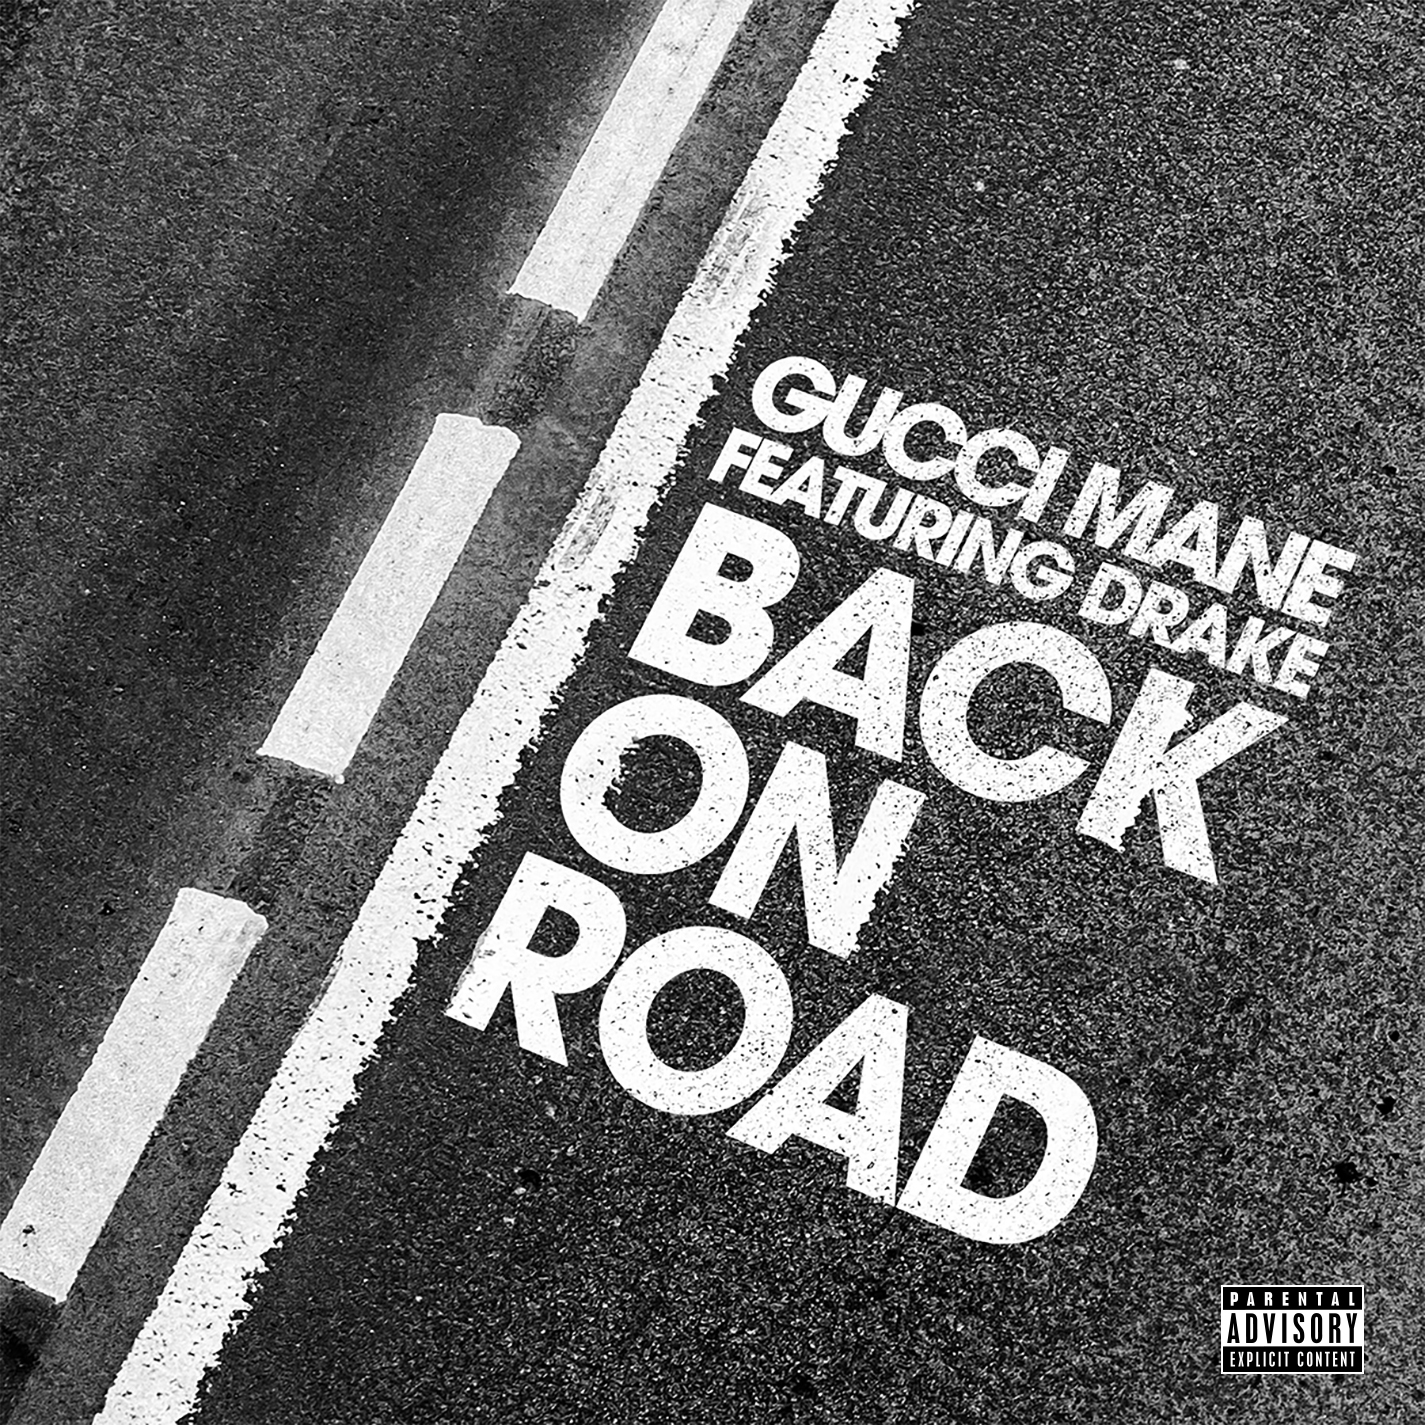 Gucci Mane and Drake - Back on Road single art